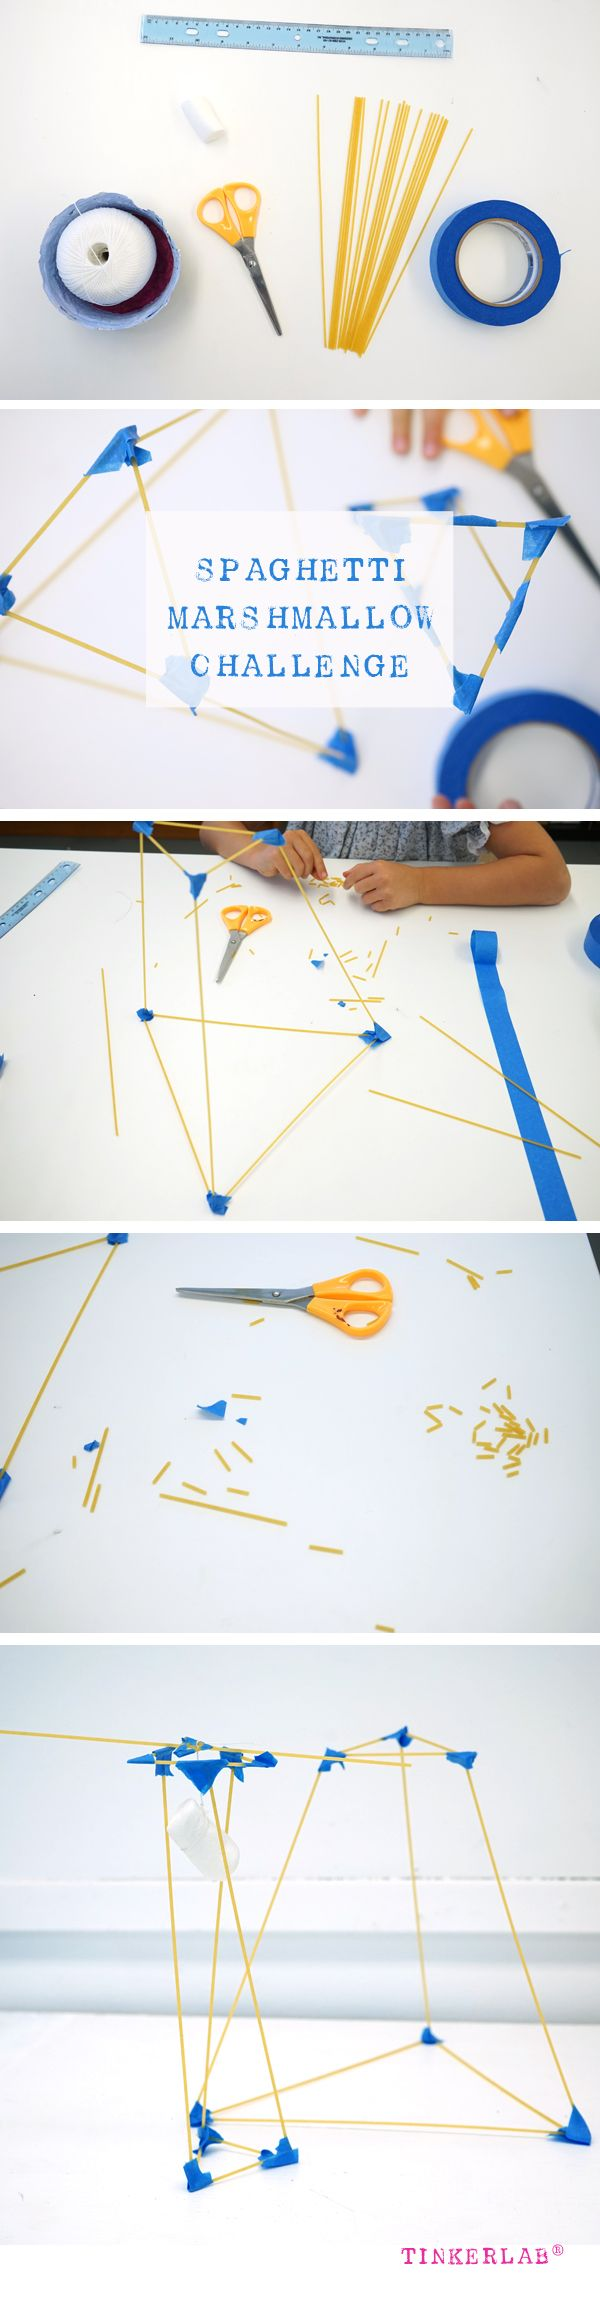 """Spaghetti Marshmallow STEM Challenge to """"build the tallest structure possible to support the marshmallows...in 18 minutes."""""""